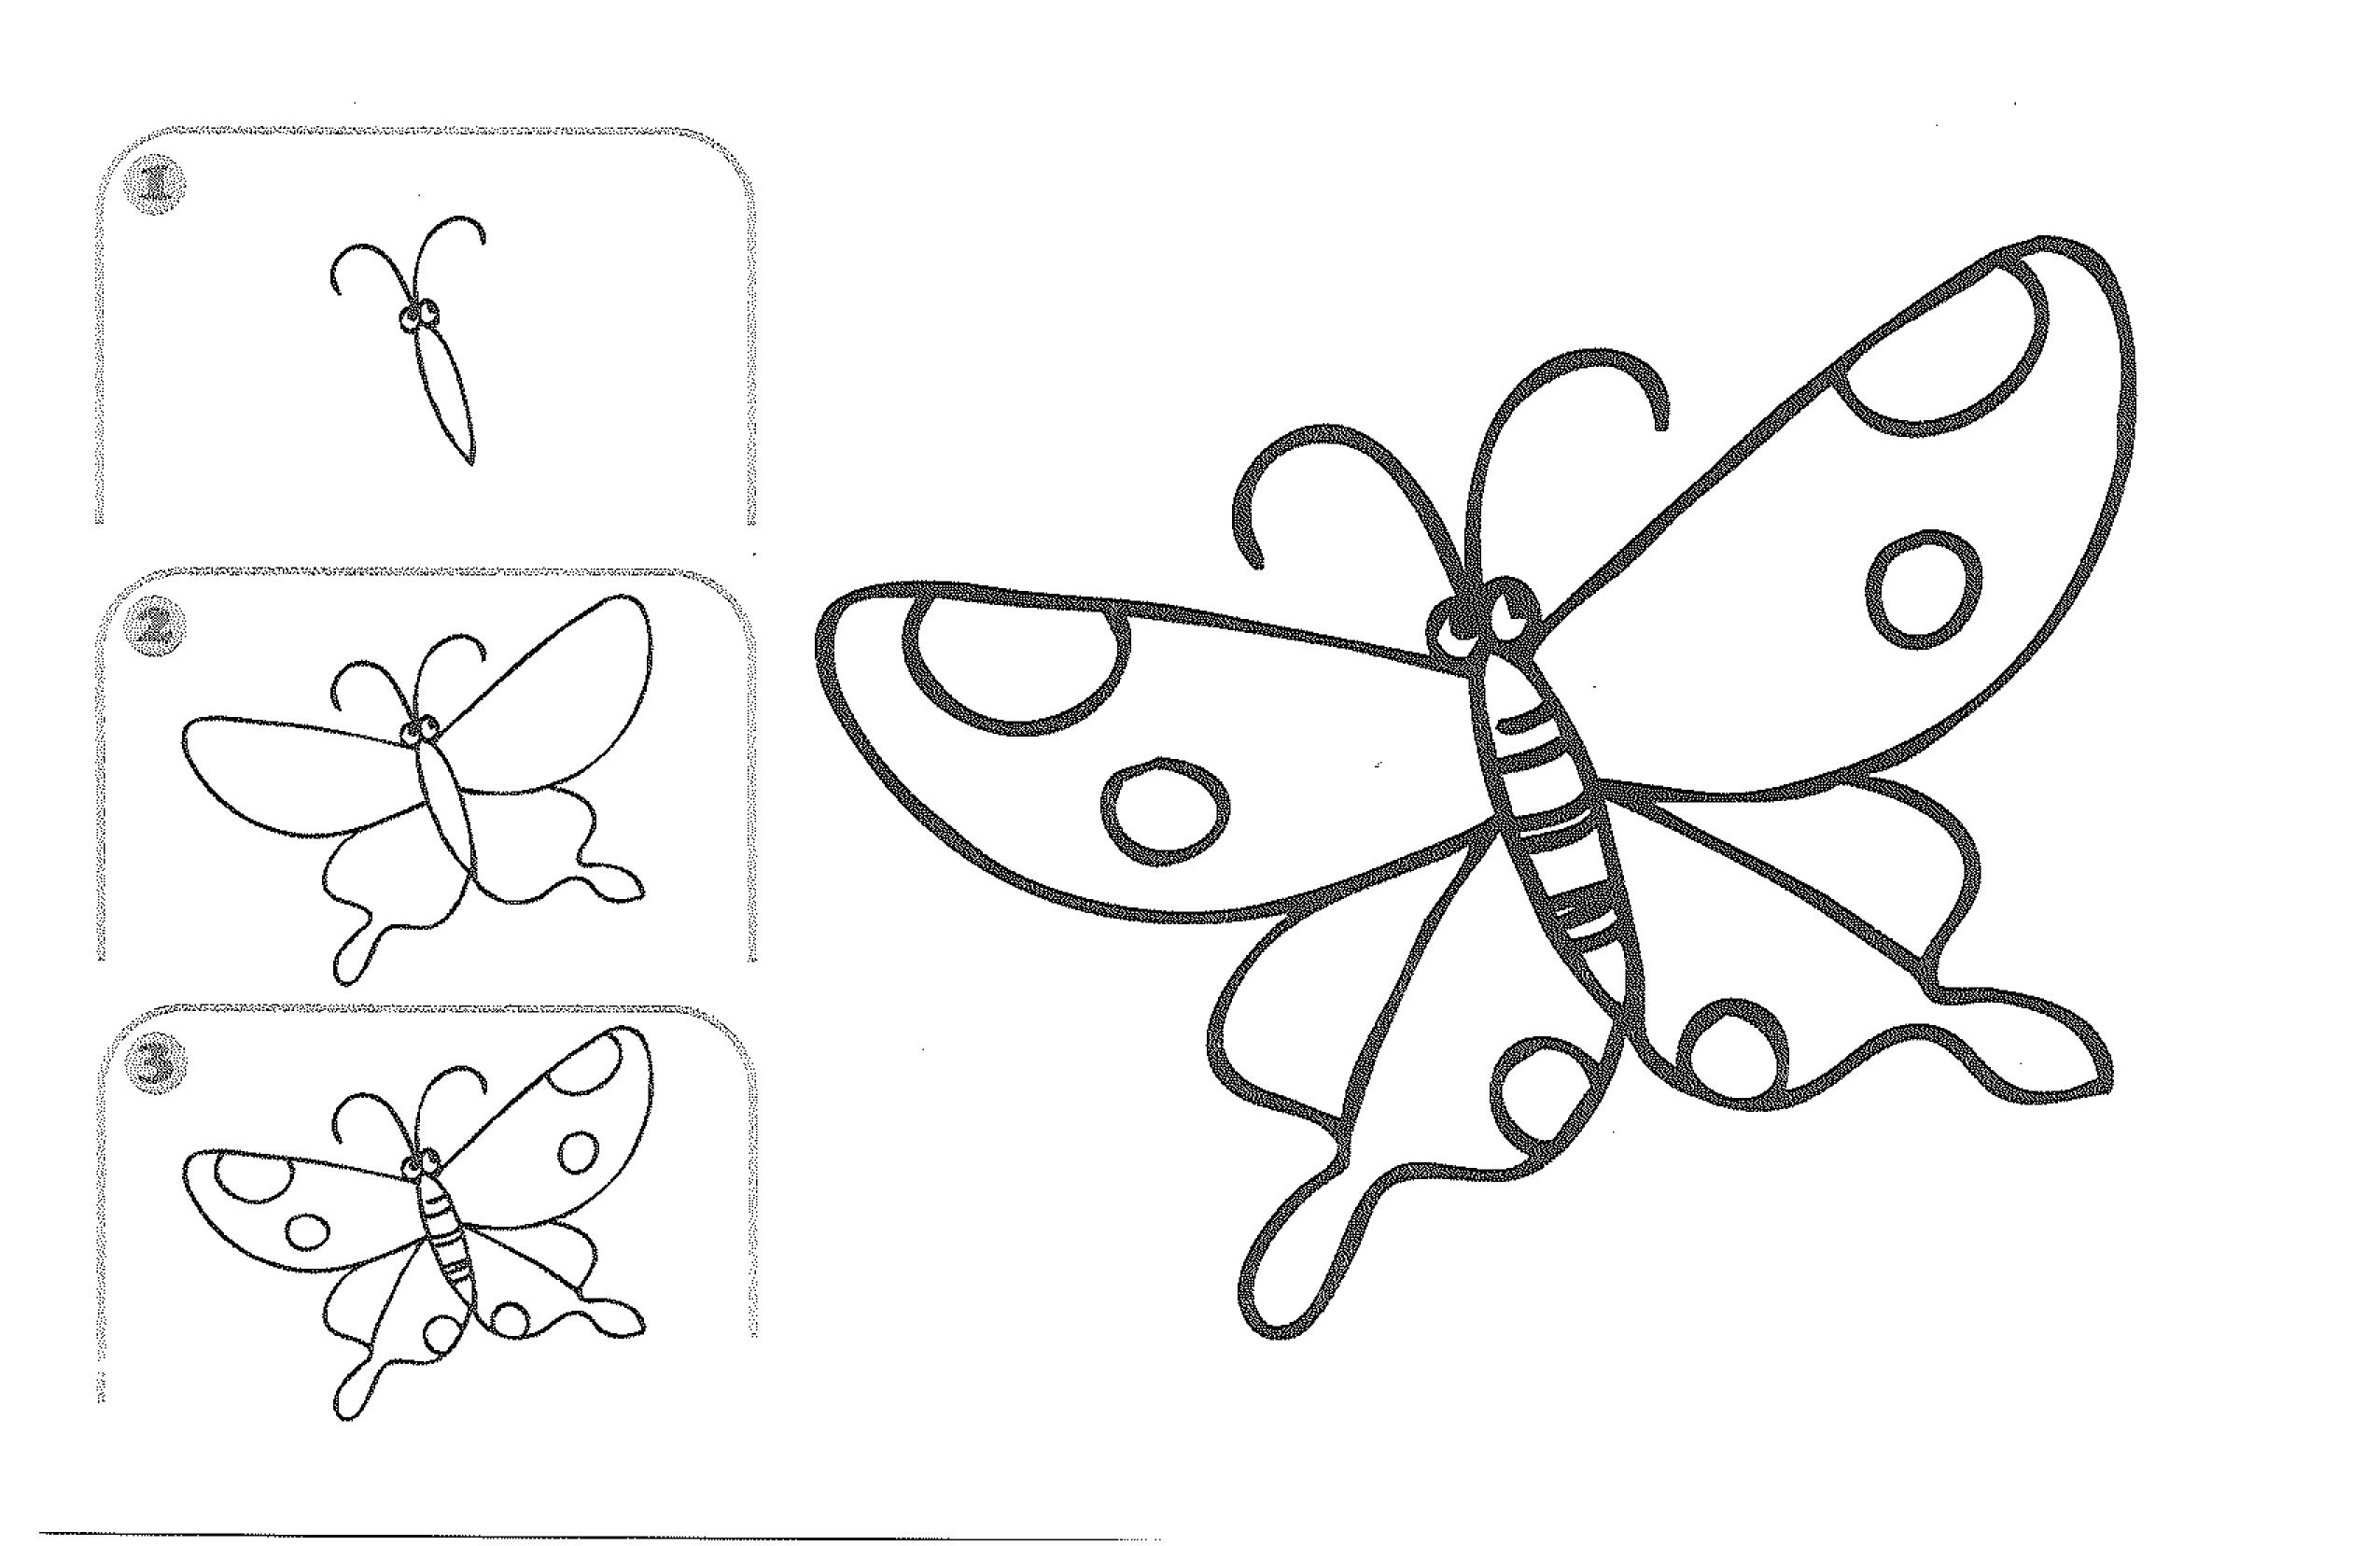 drawings by kids kids learn to draw insects teaching kids drawing free printable - Images For Kids Drawing